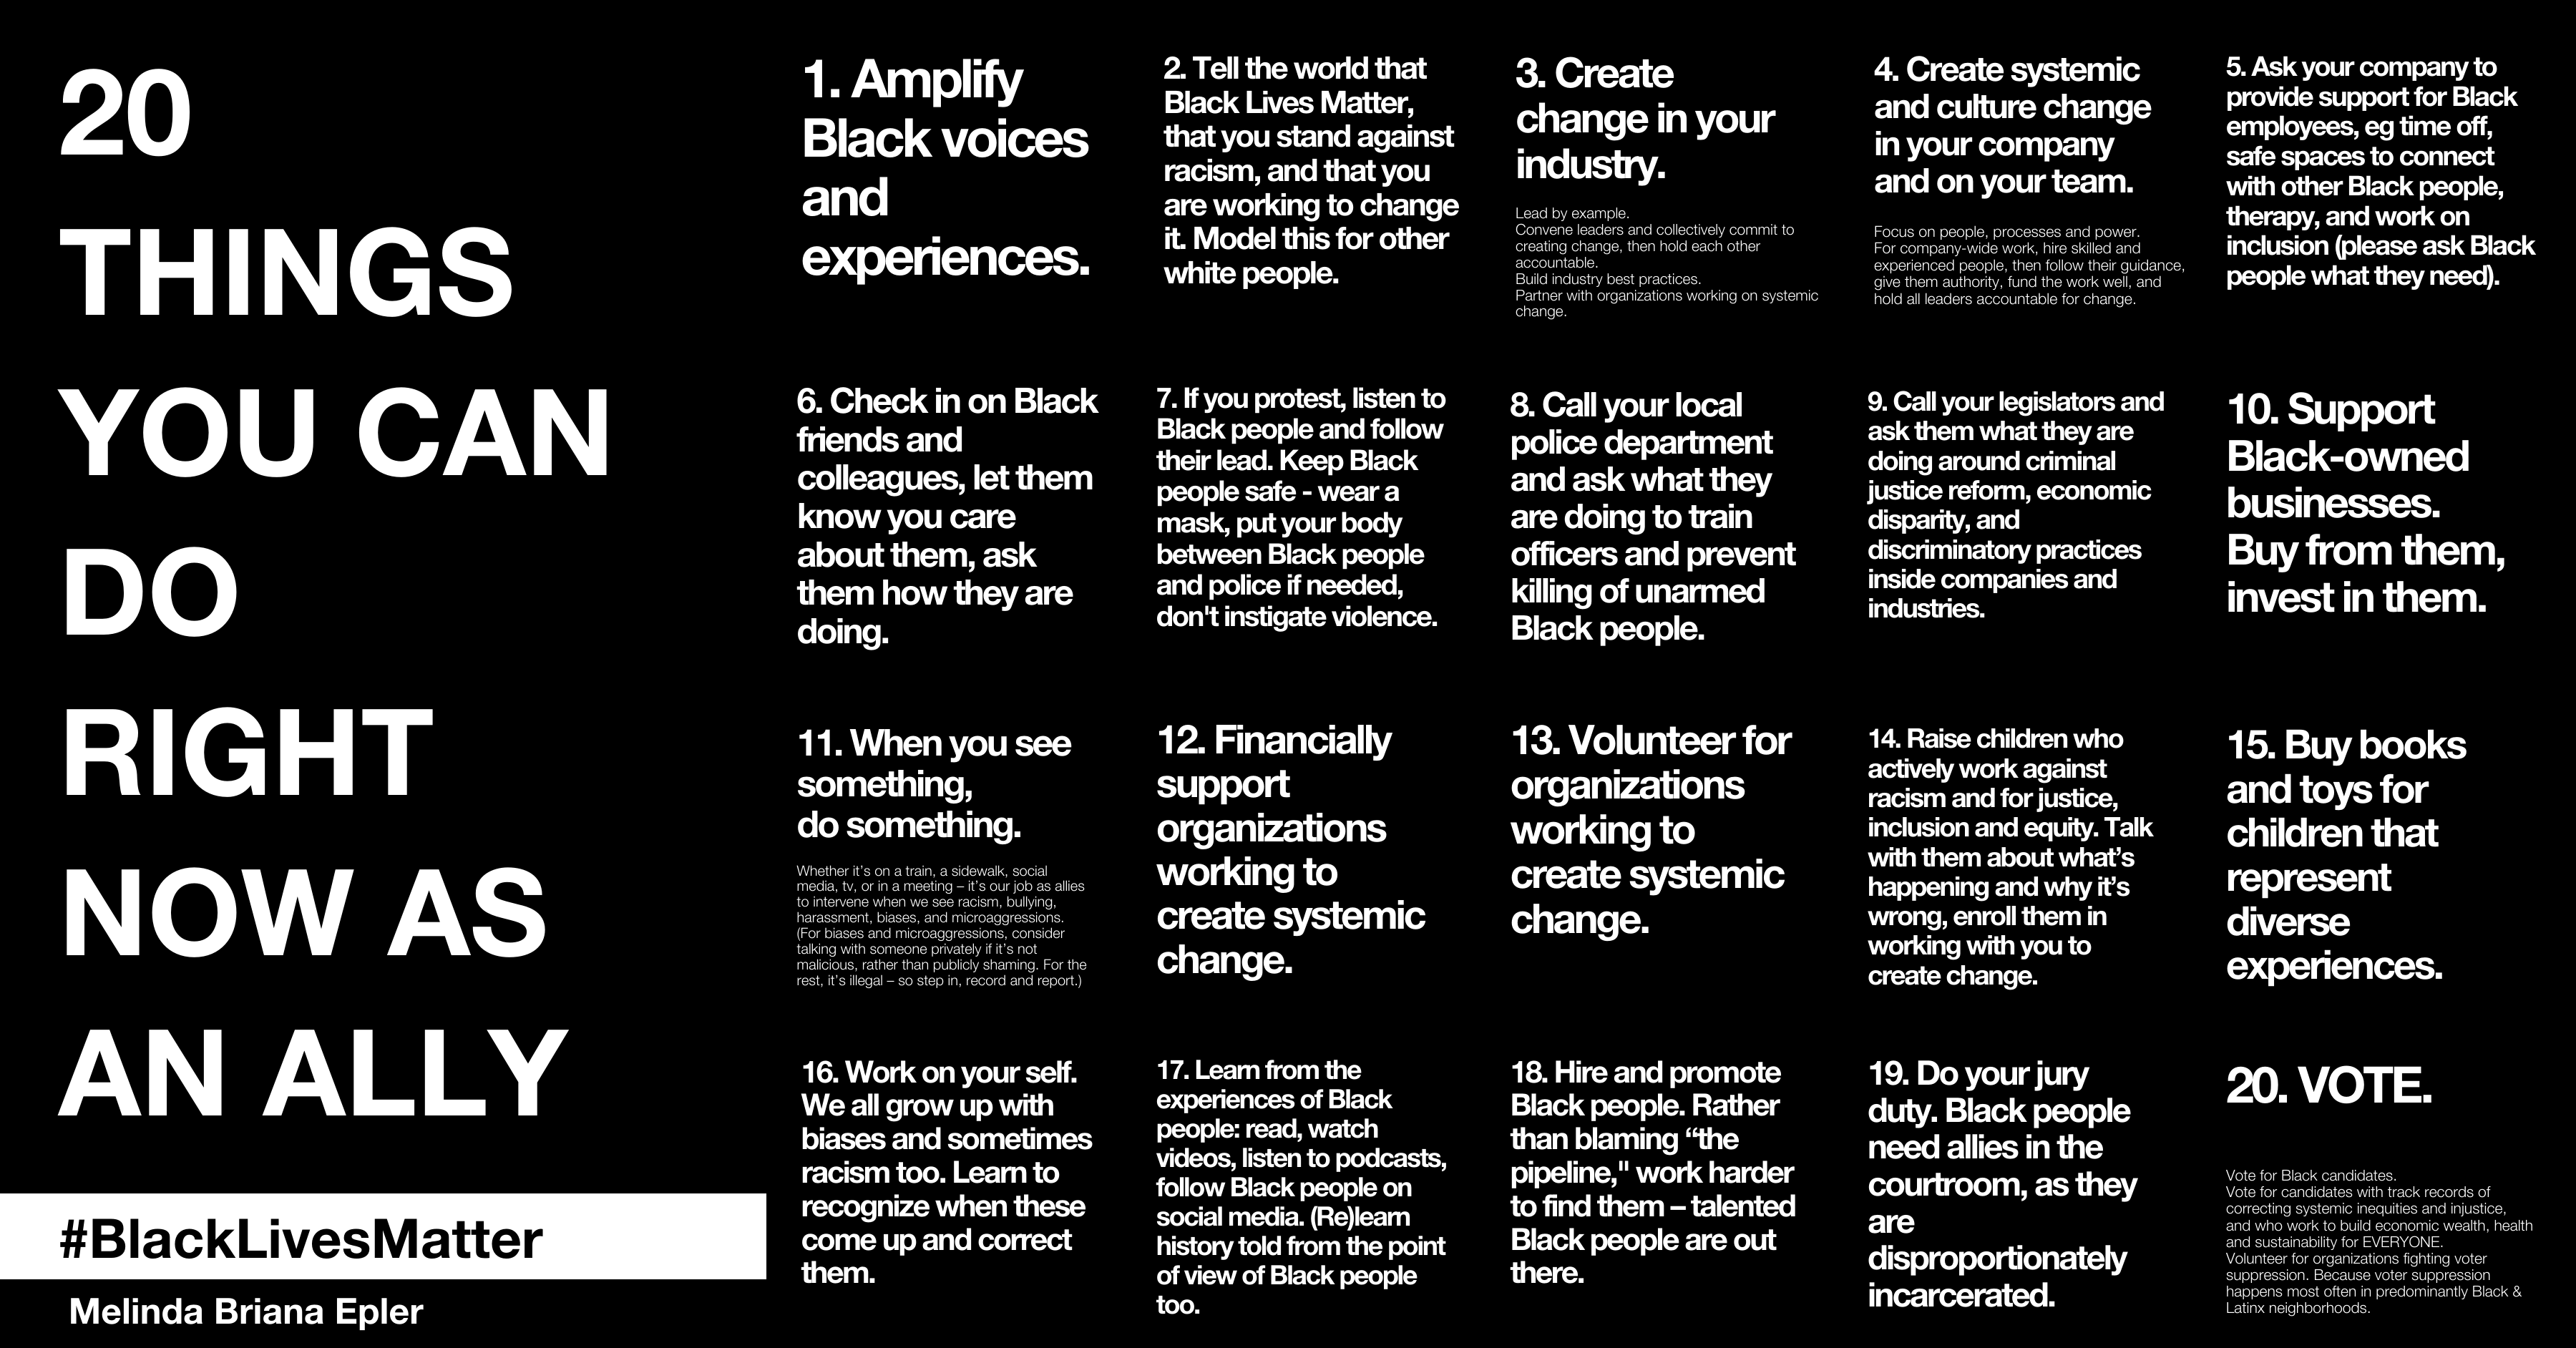 The image has numbers 1–20 of 20 Things You Can Do As An Ally Right Now. Each one is listed in the text below in the article.